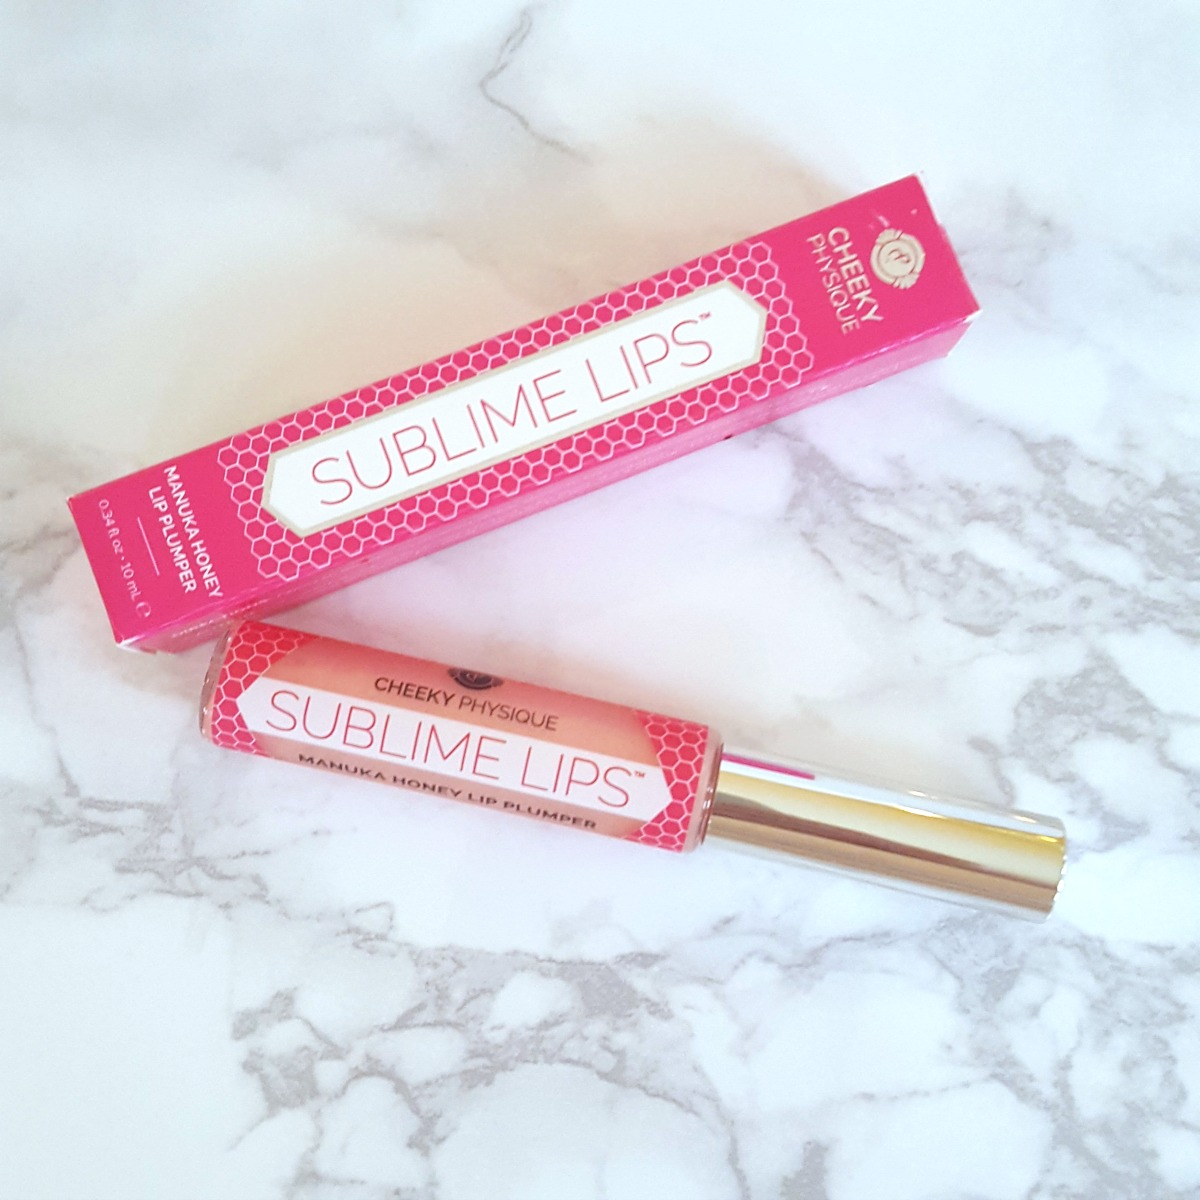 Lip Plumper Sublime Lips Cheeky Physique TheOPLife.com